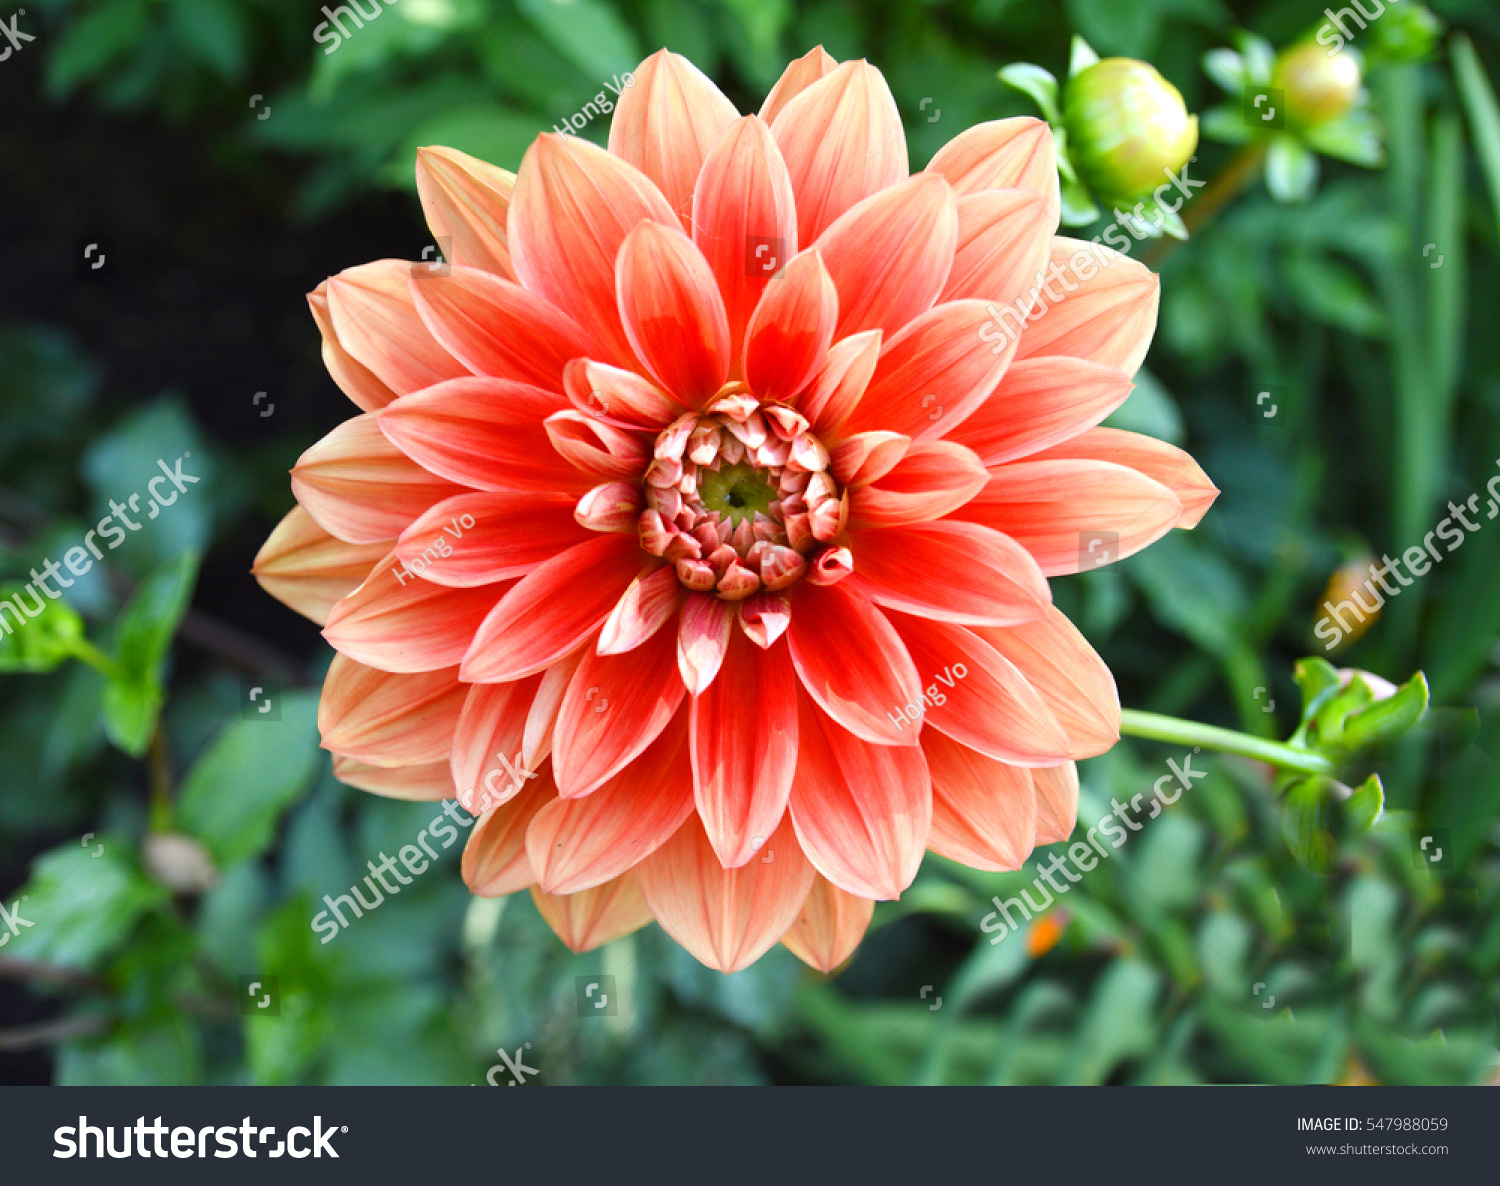 Garden Dahlia Flower Orange Color Stock Photo (Royalty Free ...